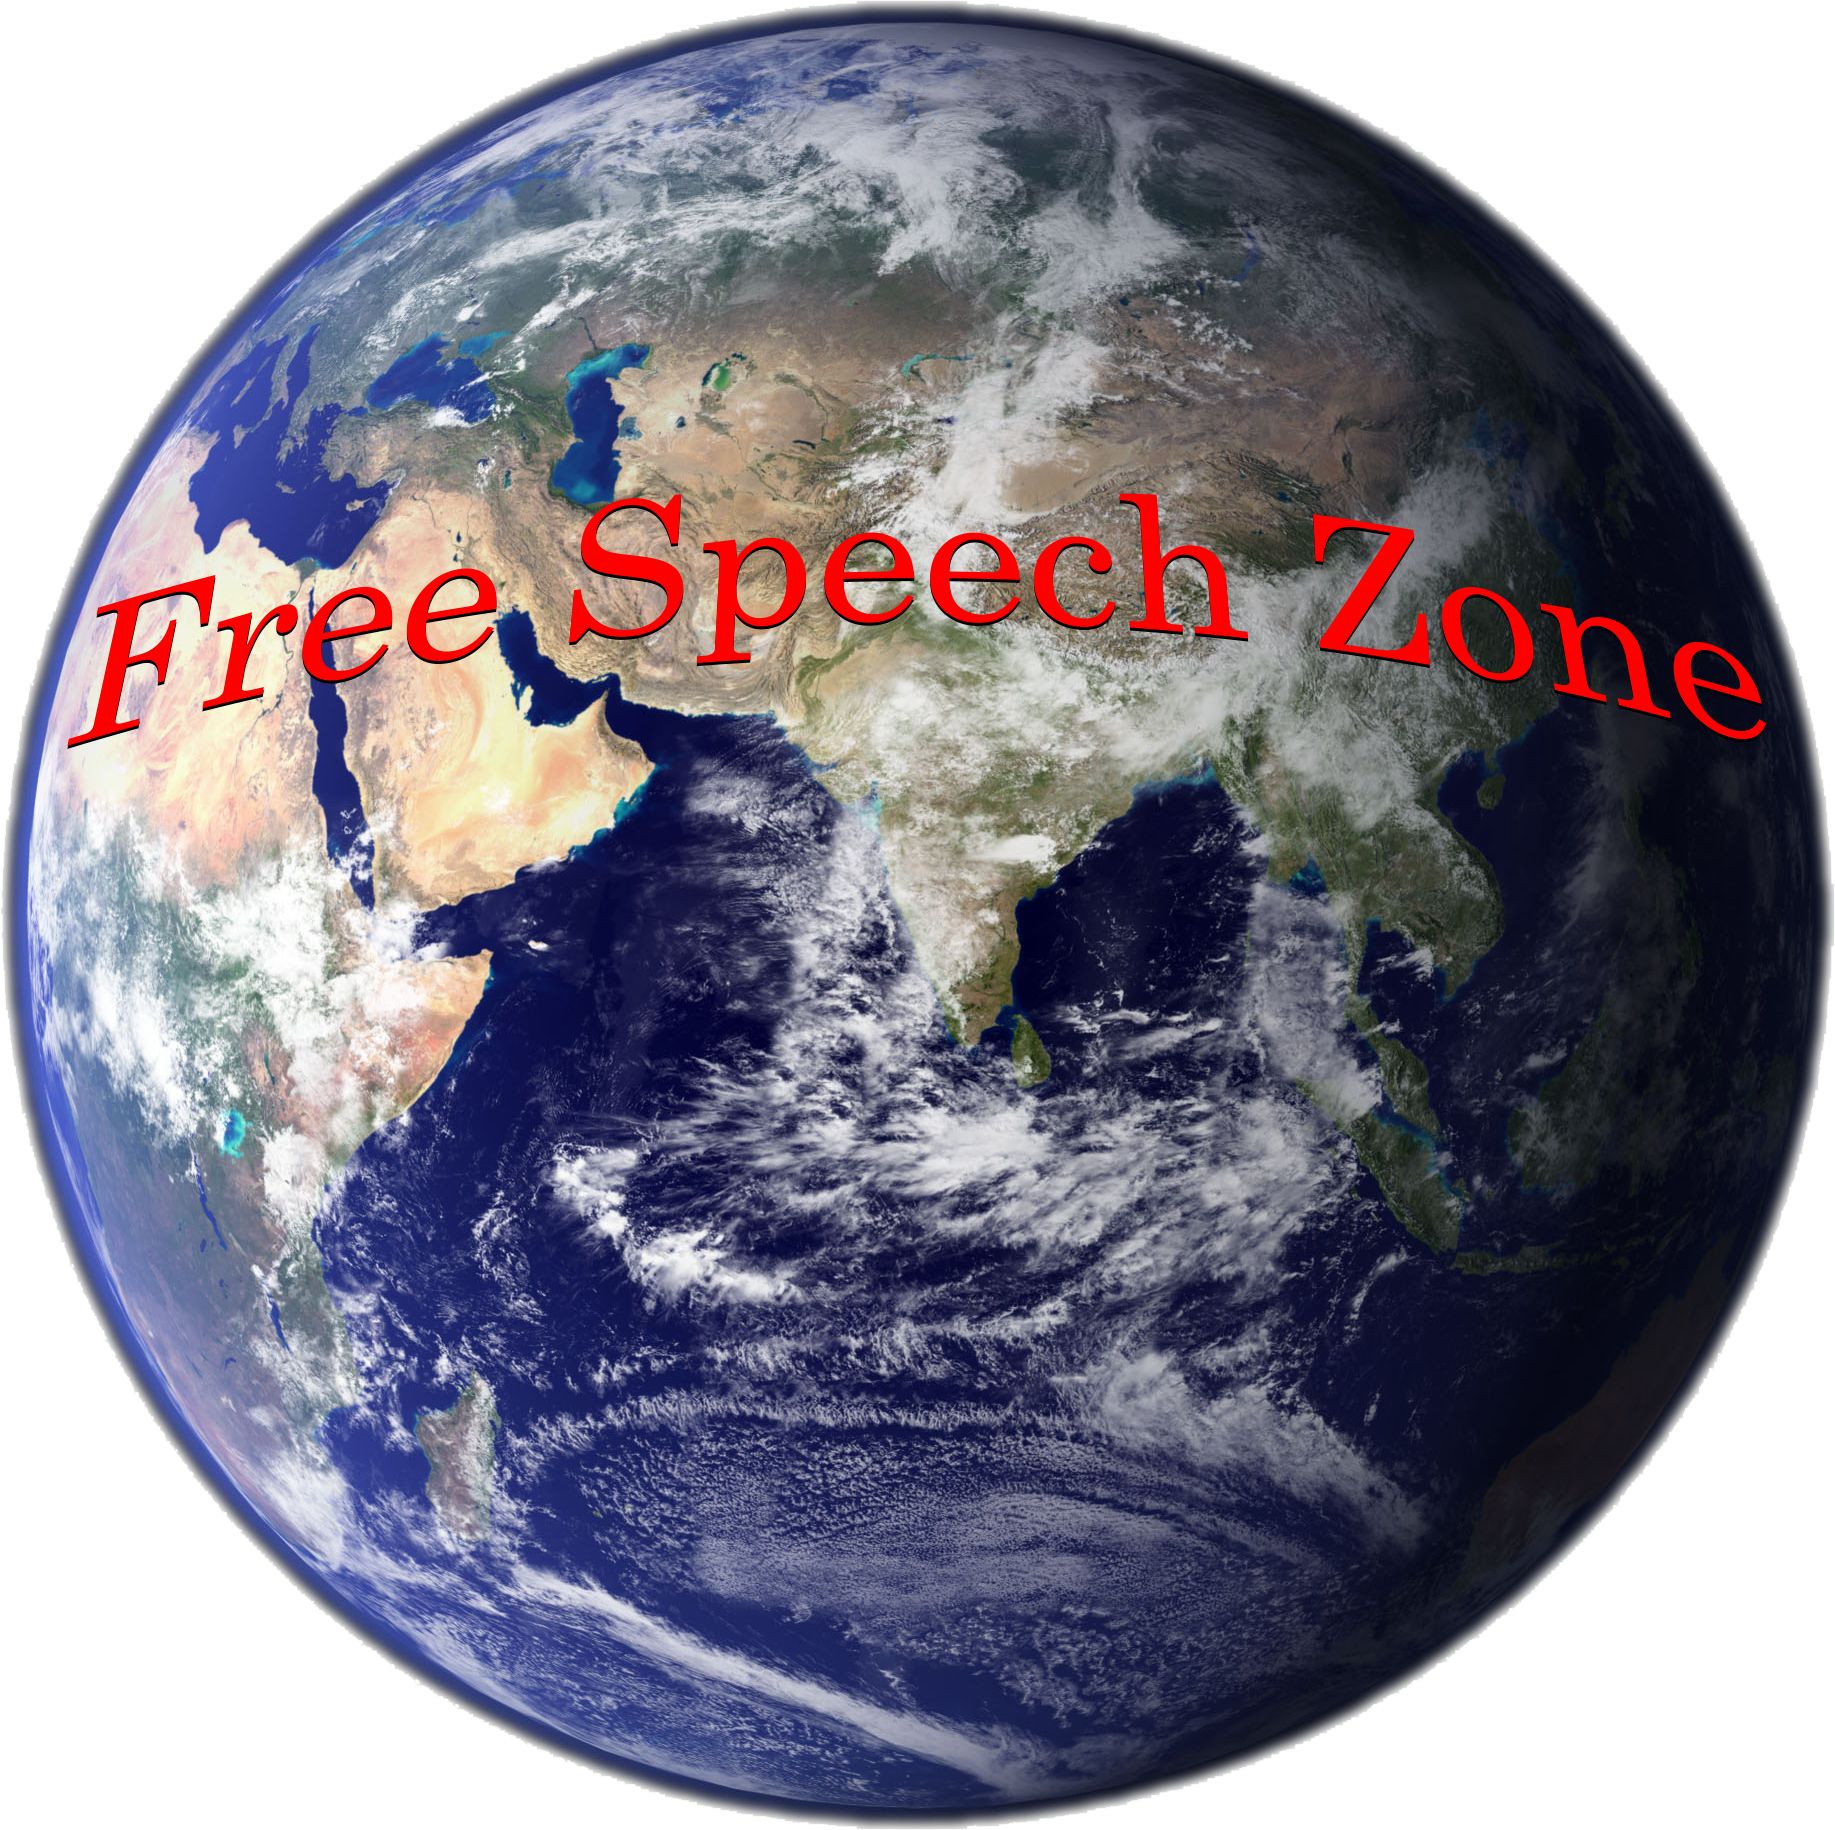 Free Speech Zone: A Picture of the planet Earth